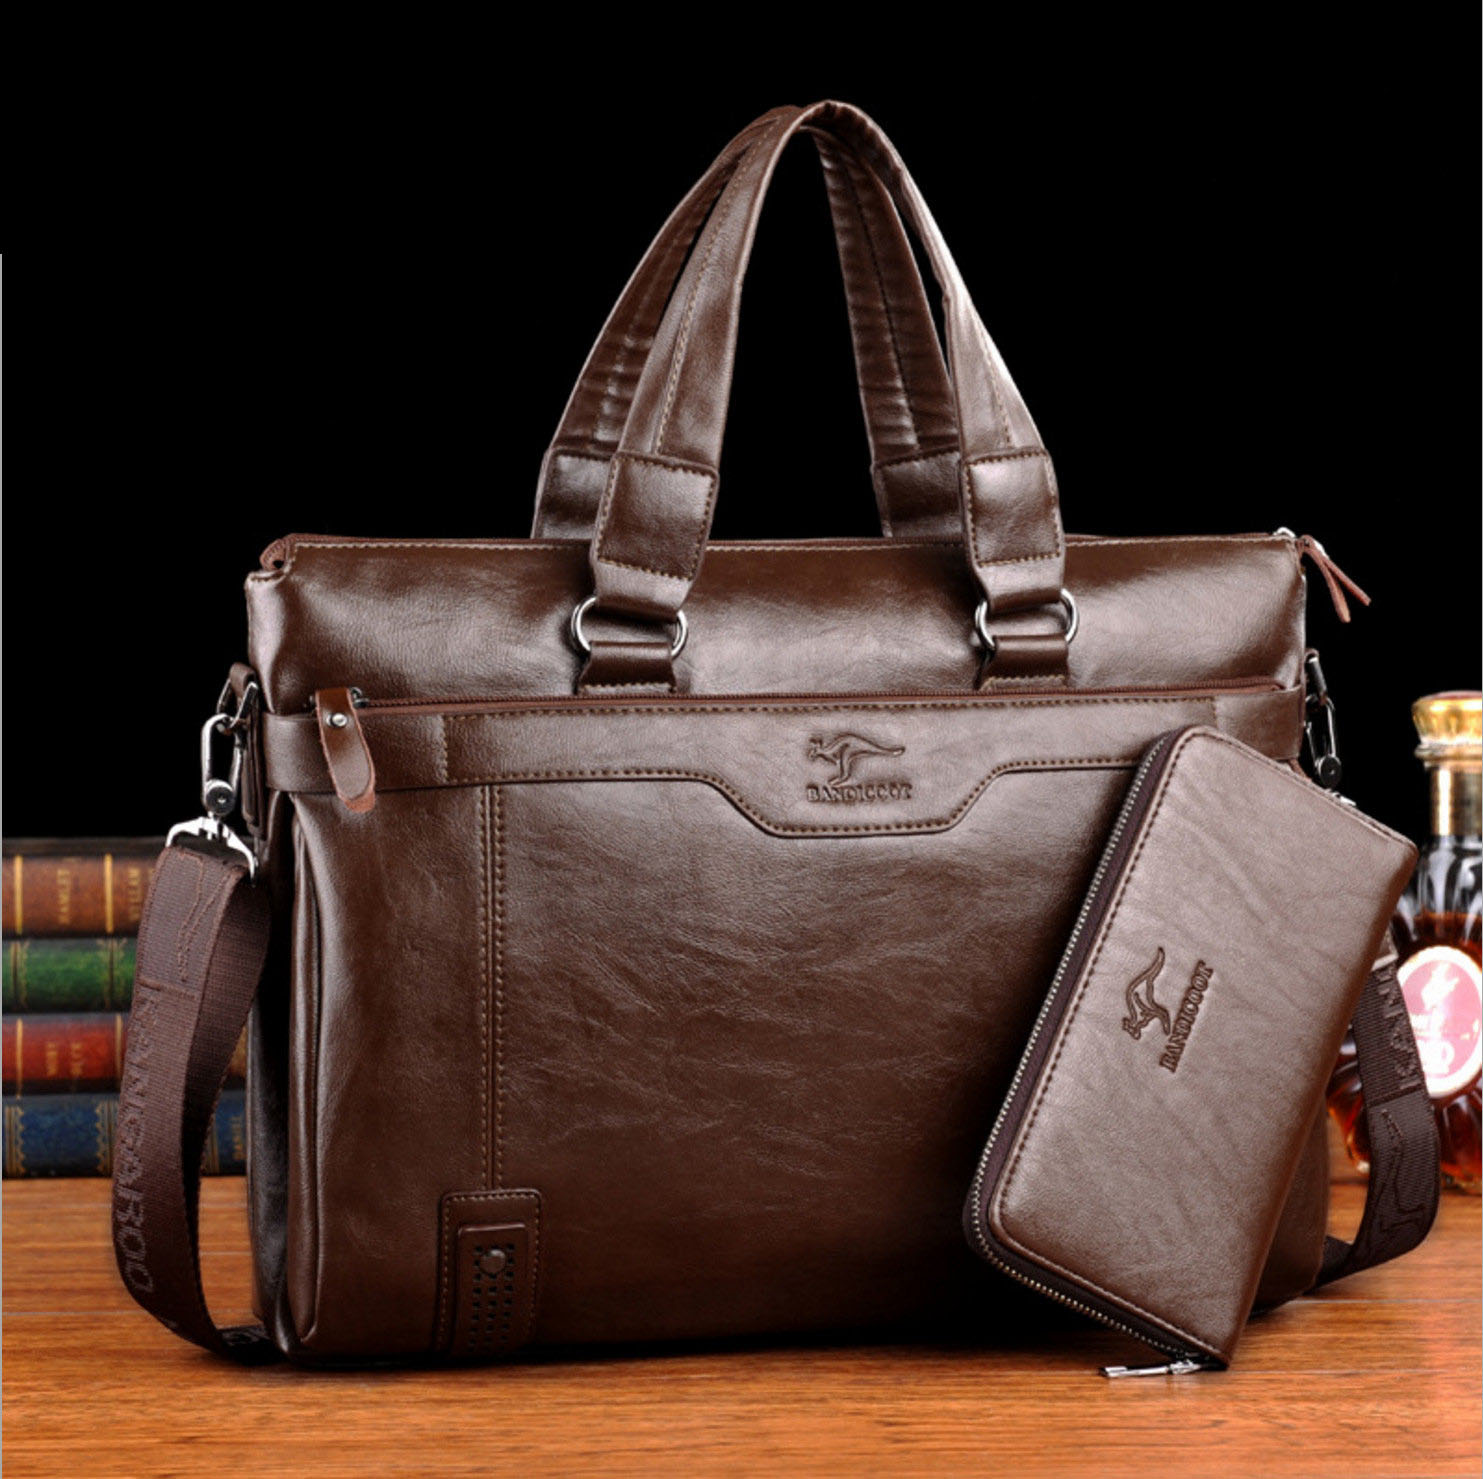 Men's Briefcase 15in Computer Bag Male Leather Briefcase For Men Shoulder Laptop Bag Office Casual Sacoche A Case For Documents